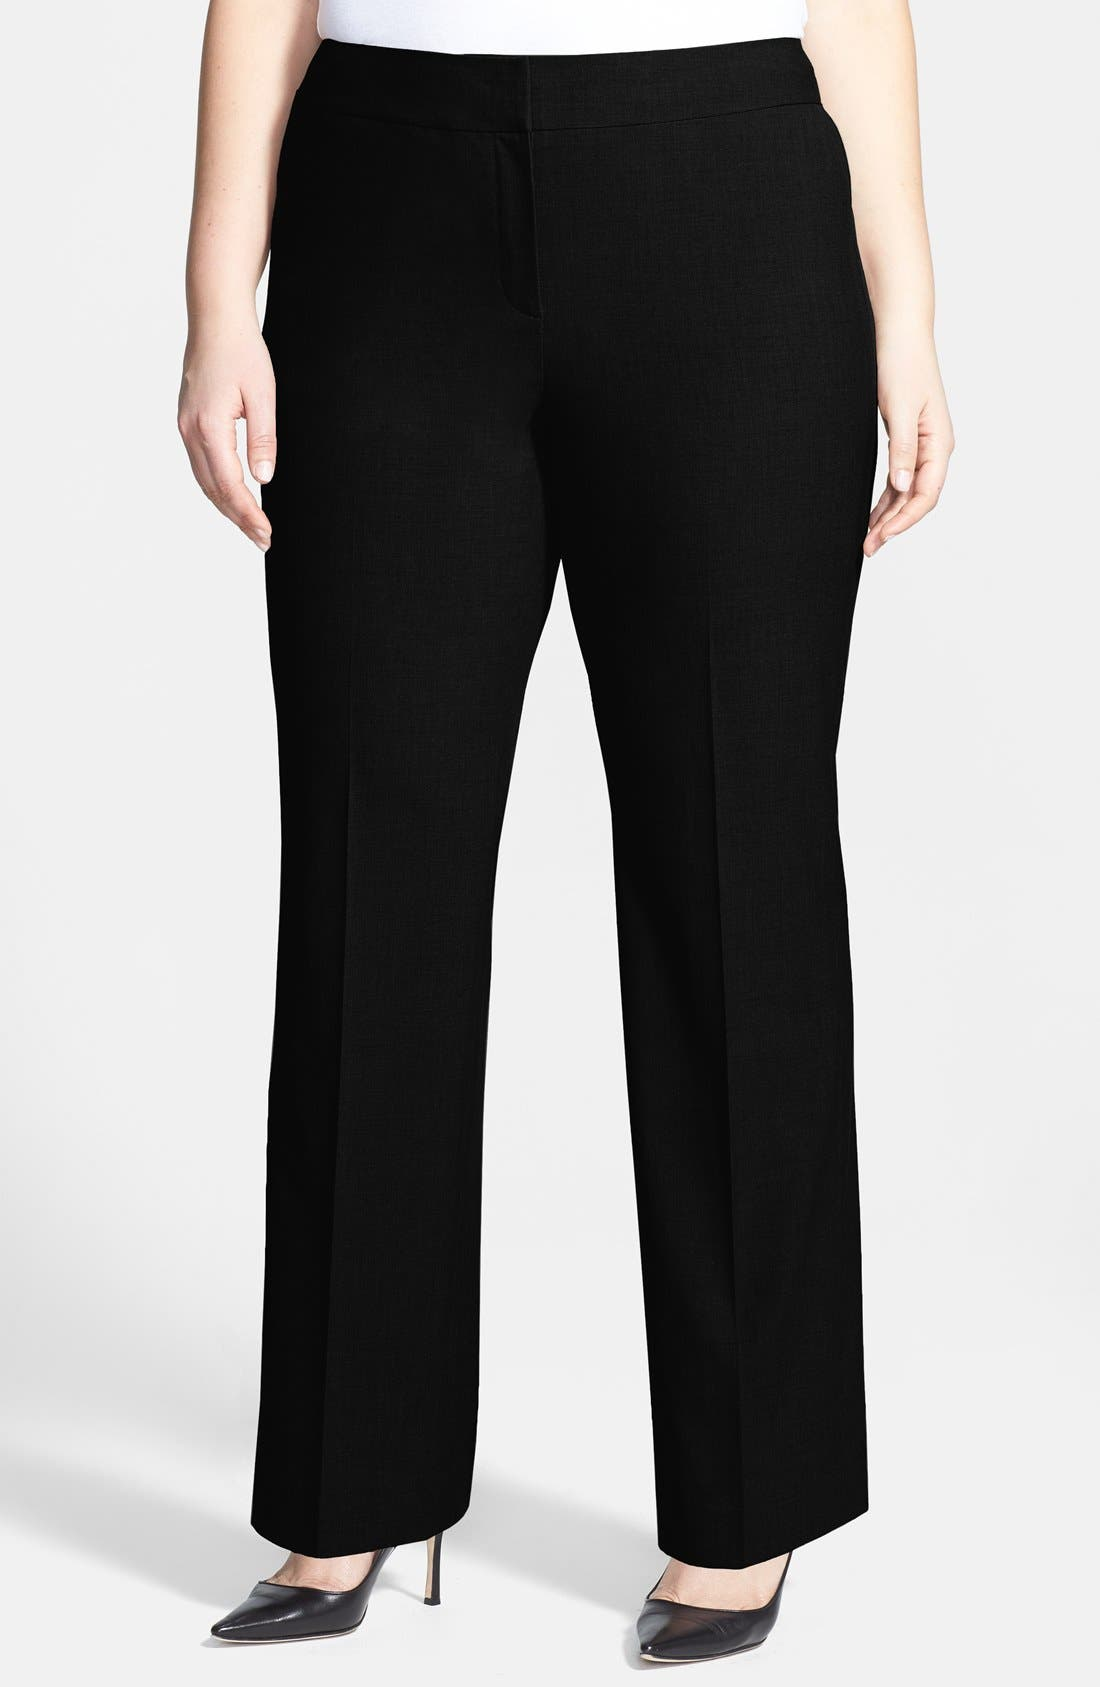 Alternate Image 4  - Sejour 'Ela' Curvy Fit Pants (Plus Size & Petite Plus)